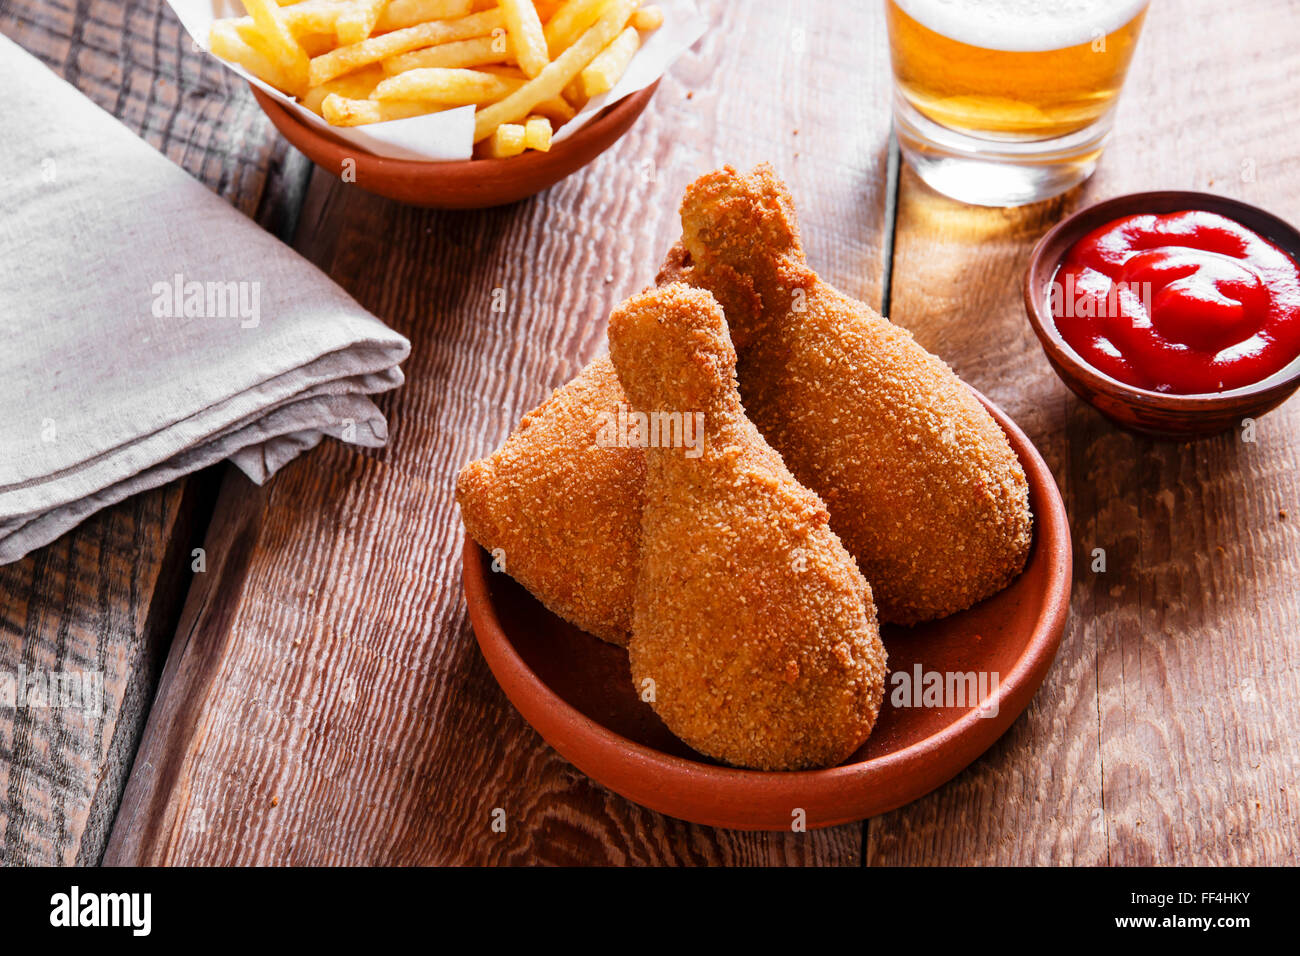 fried chicken leg in breadcrumbs and french fries - Stock Image